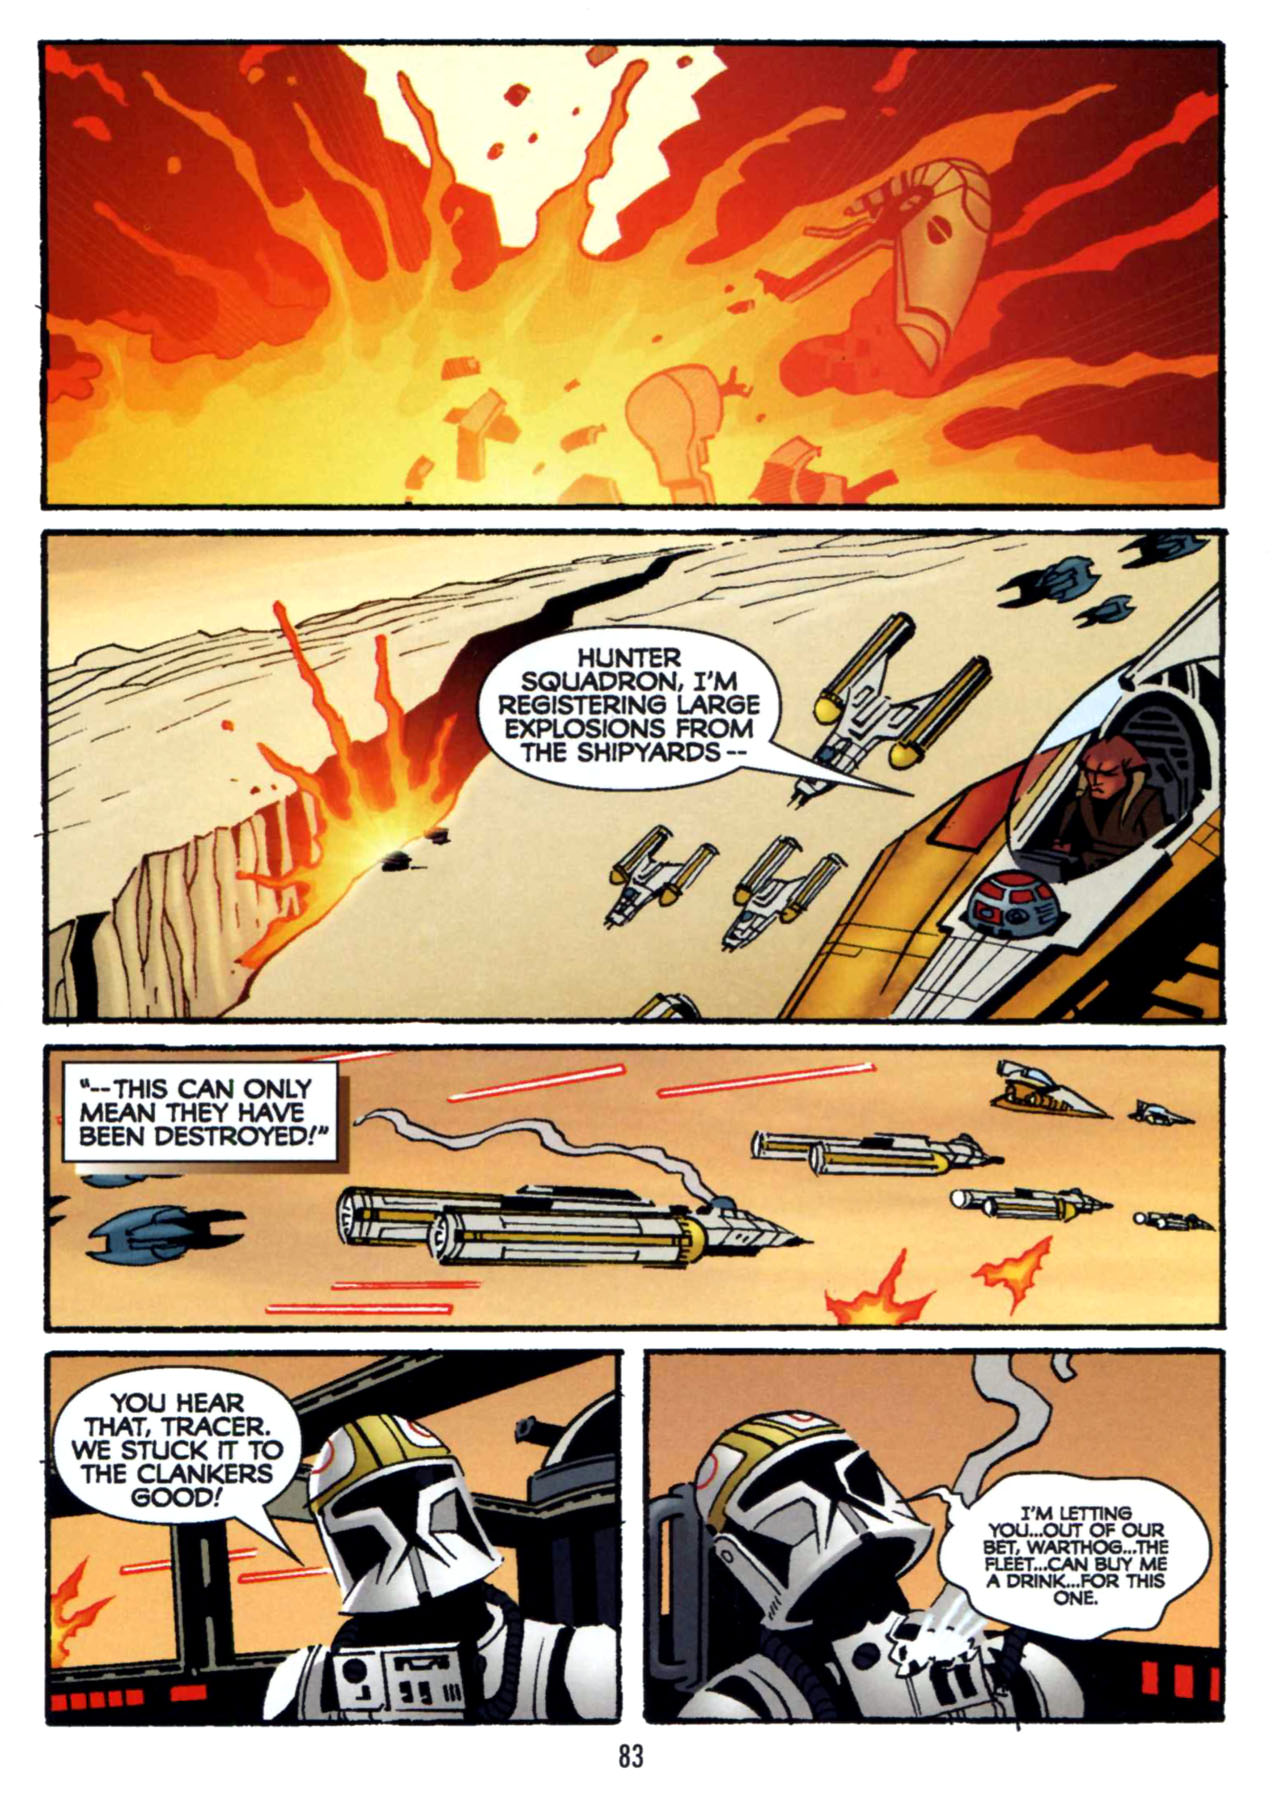 Read online Star Wars: The Clone Wars - Shipyards of Doom comic -  Issue # Full - 81